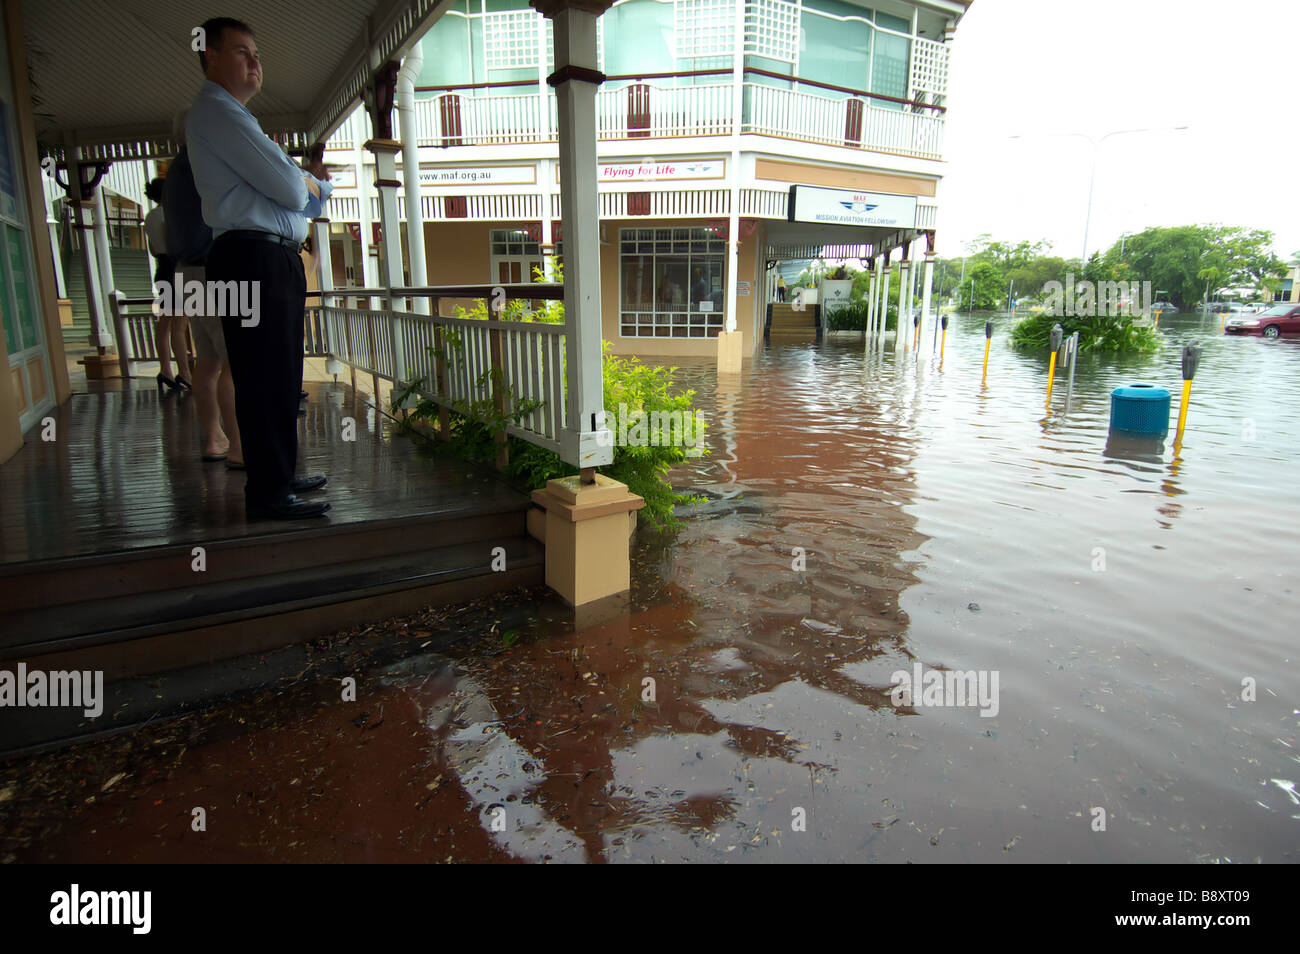 Business grinds to a halt with flooding in the Cairns CBD, Queensland, Australia Stock Photo